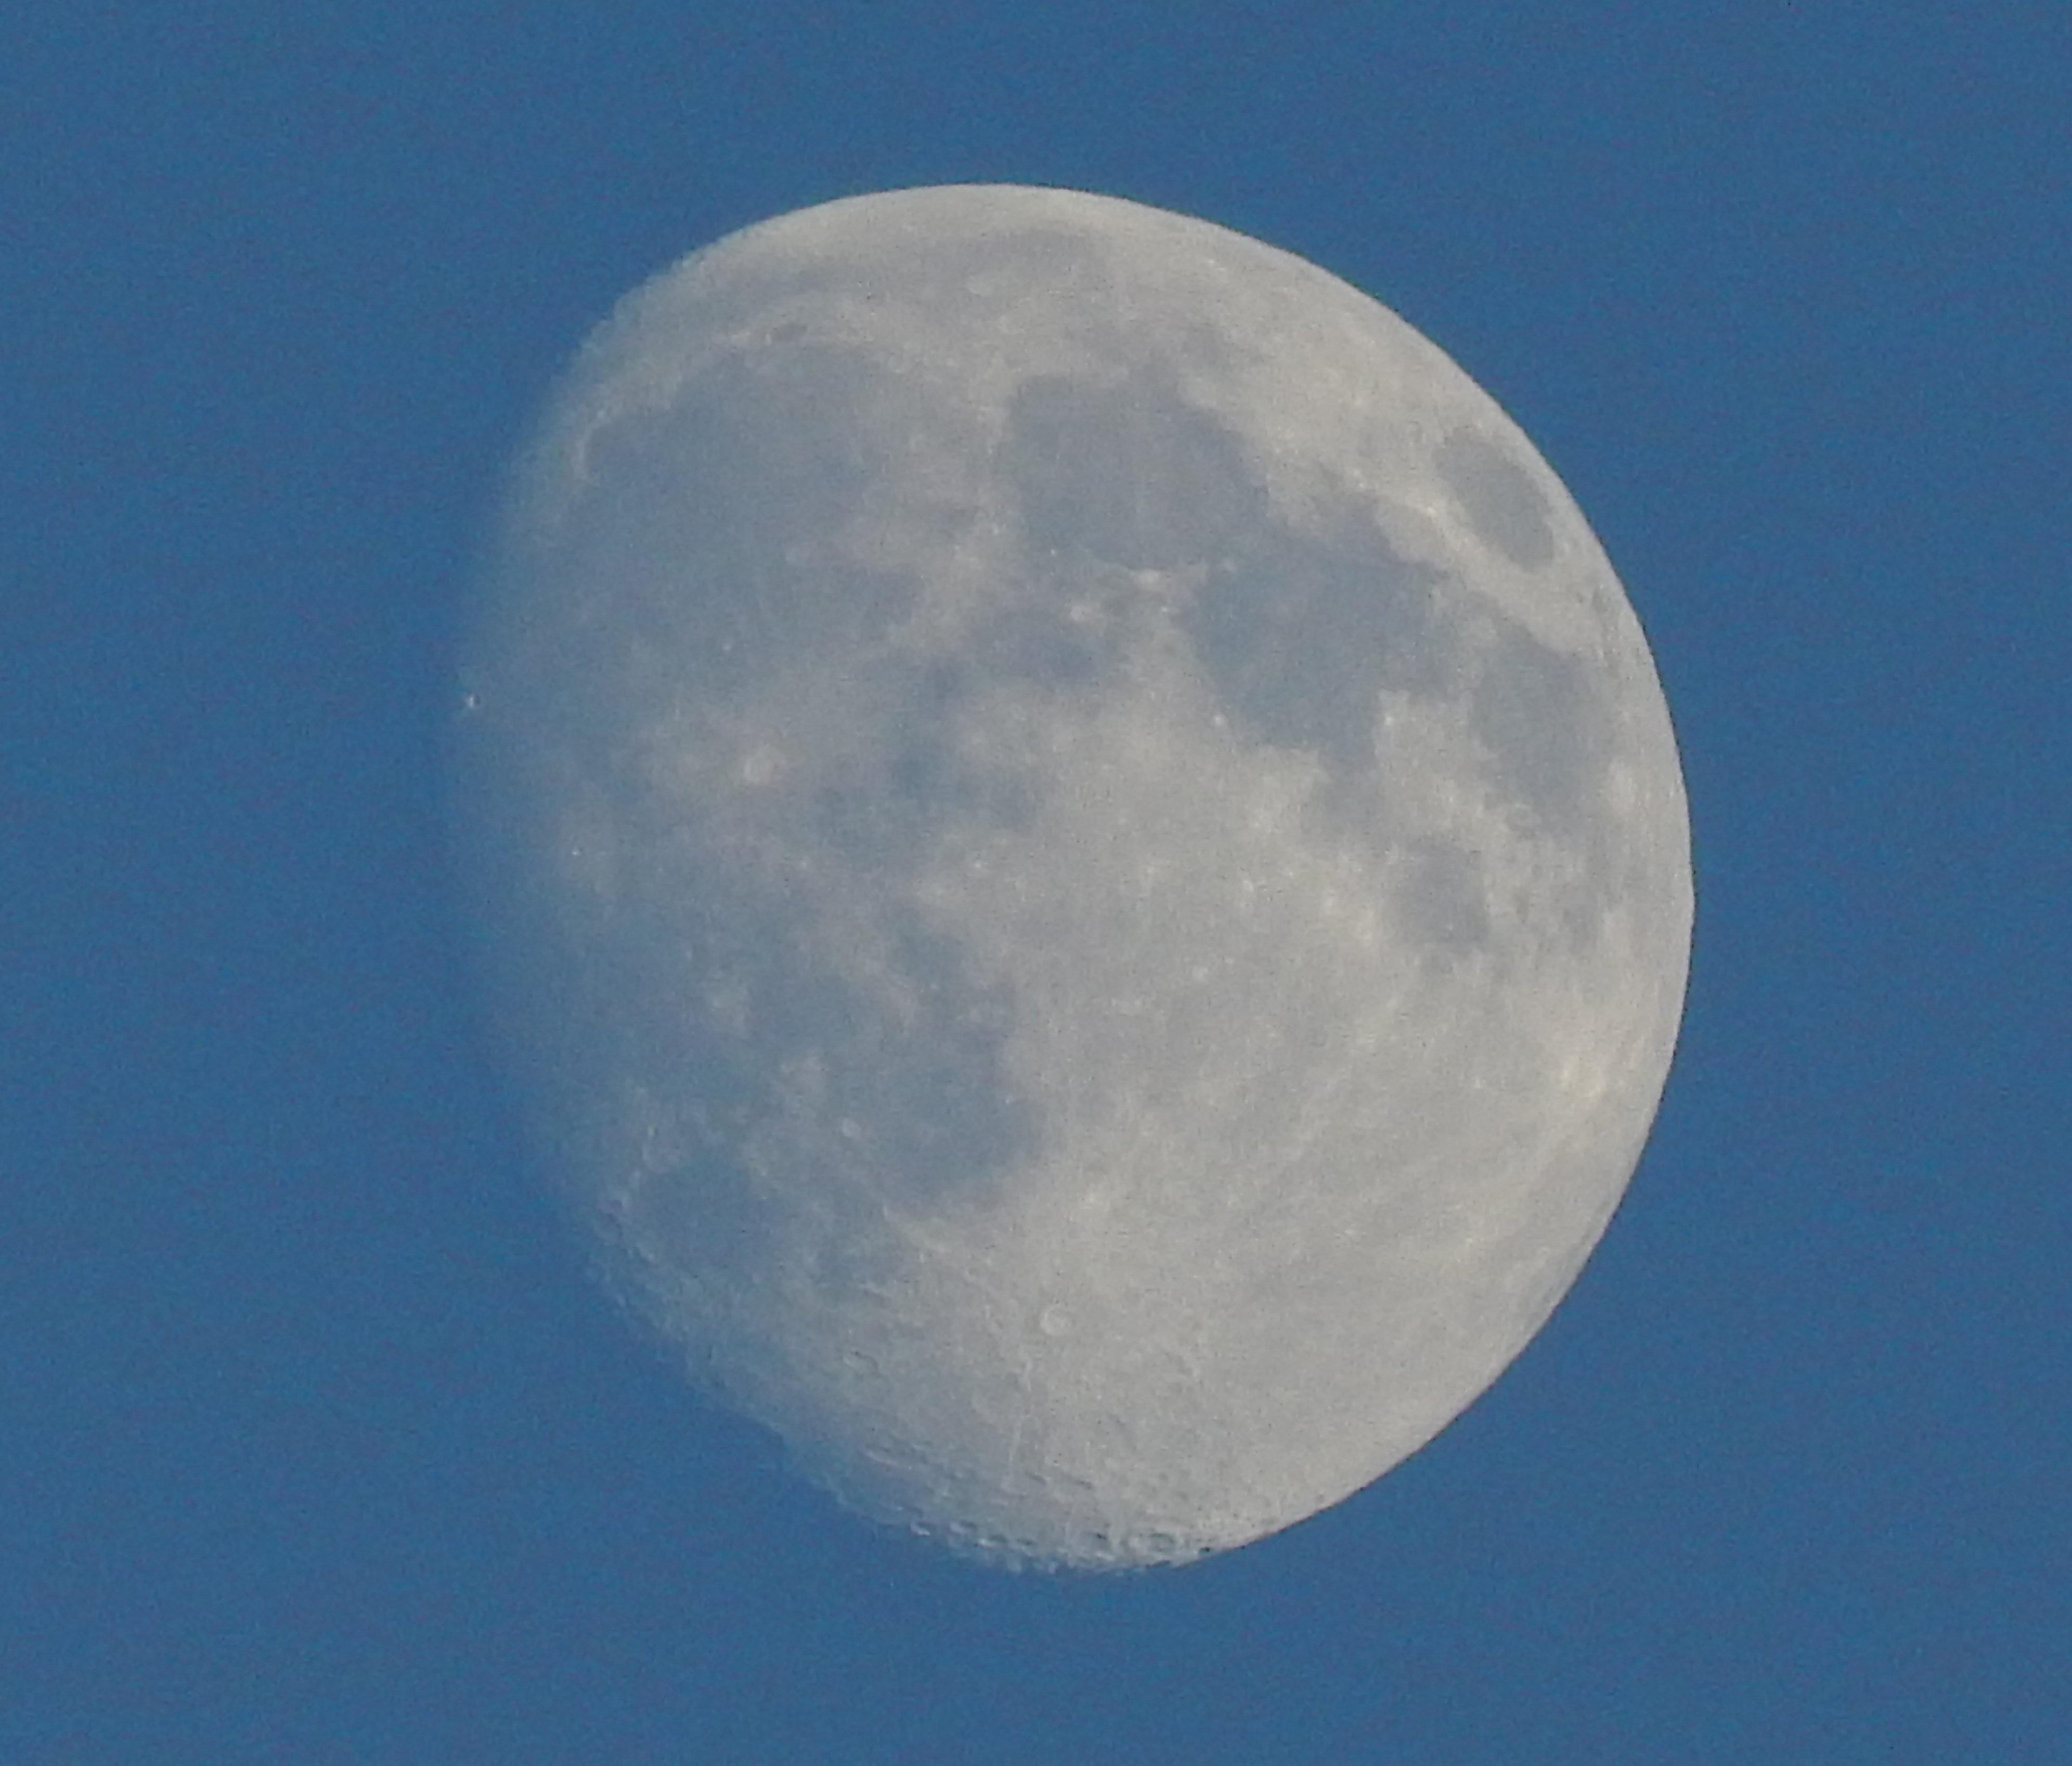 A waxing moon in the early evening